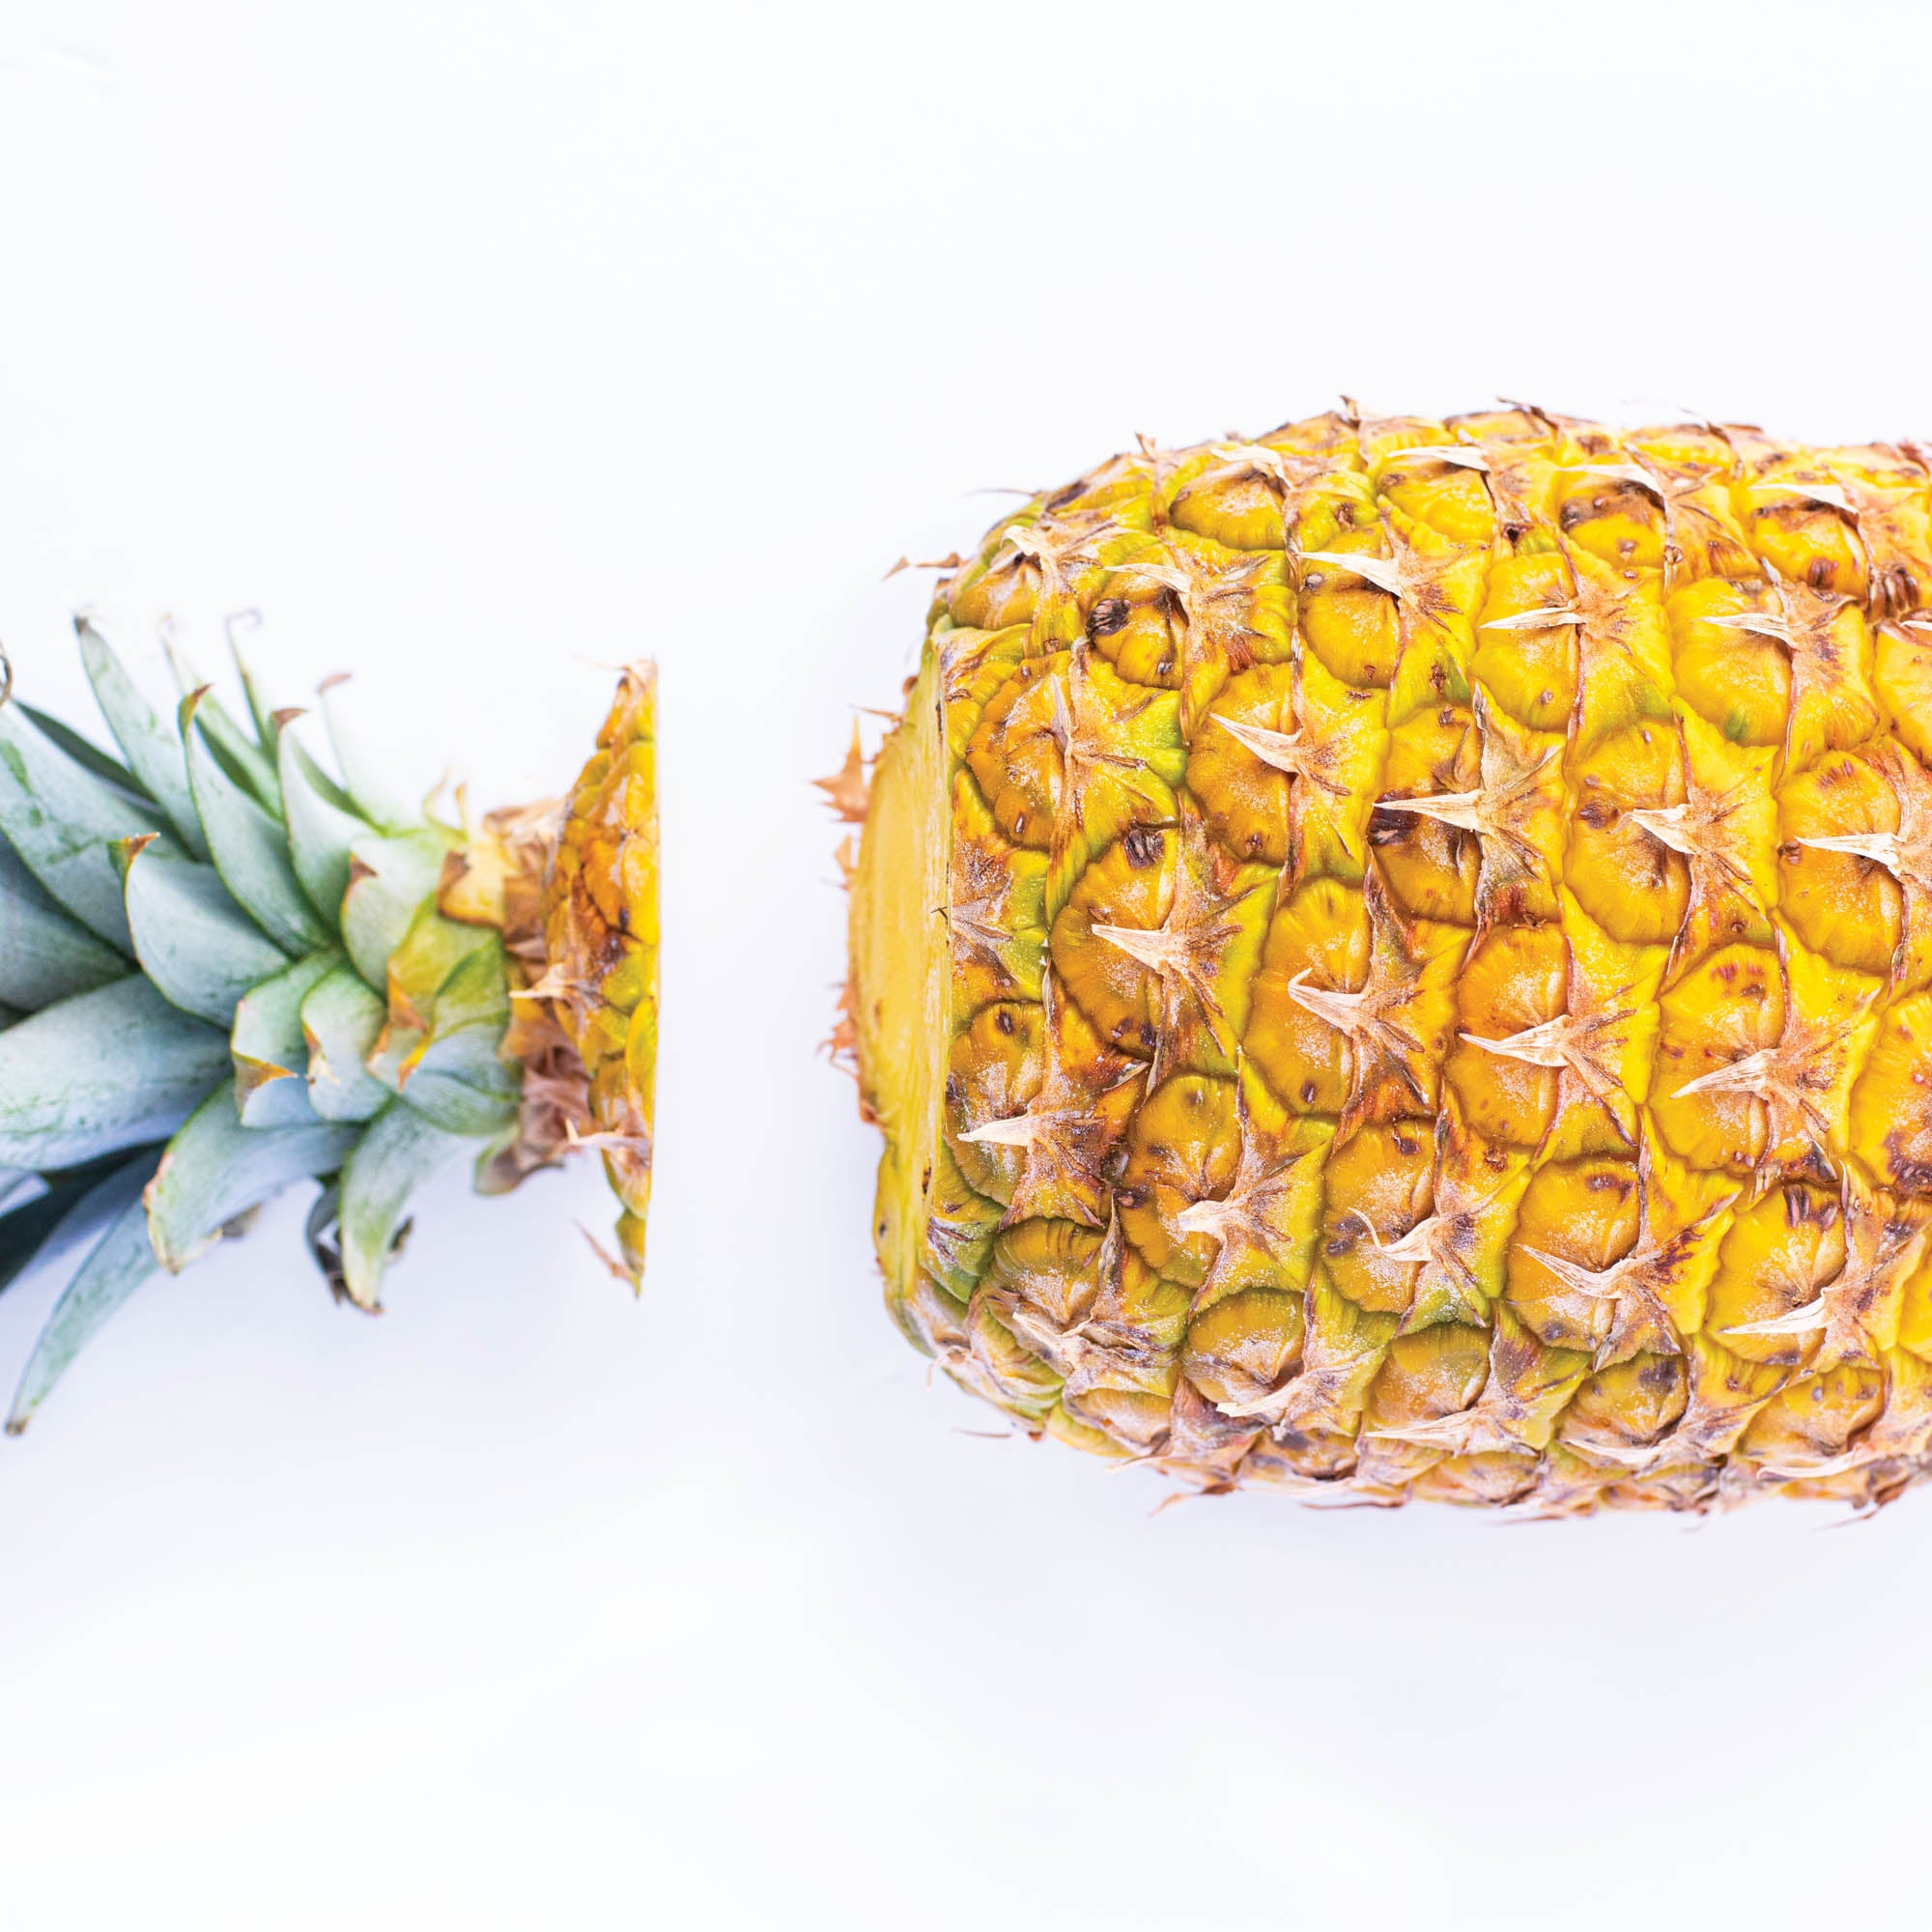 Pineapple with top cut off